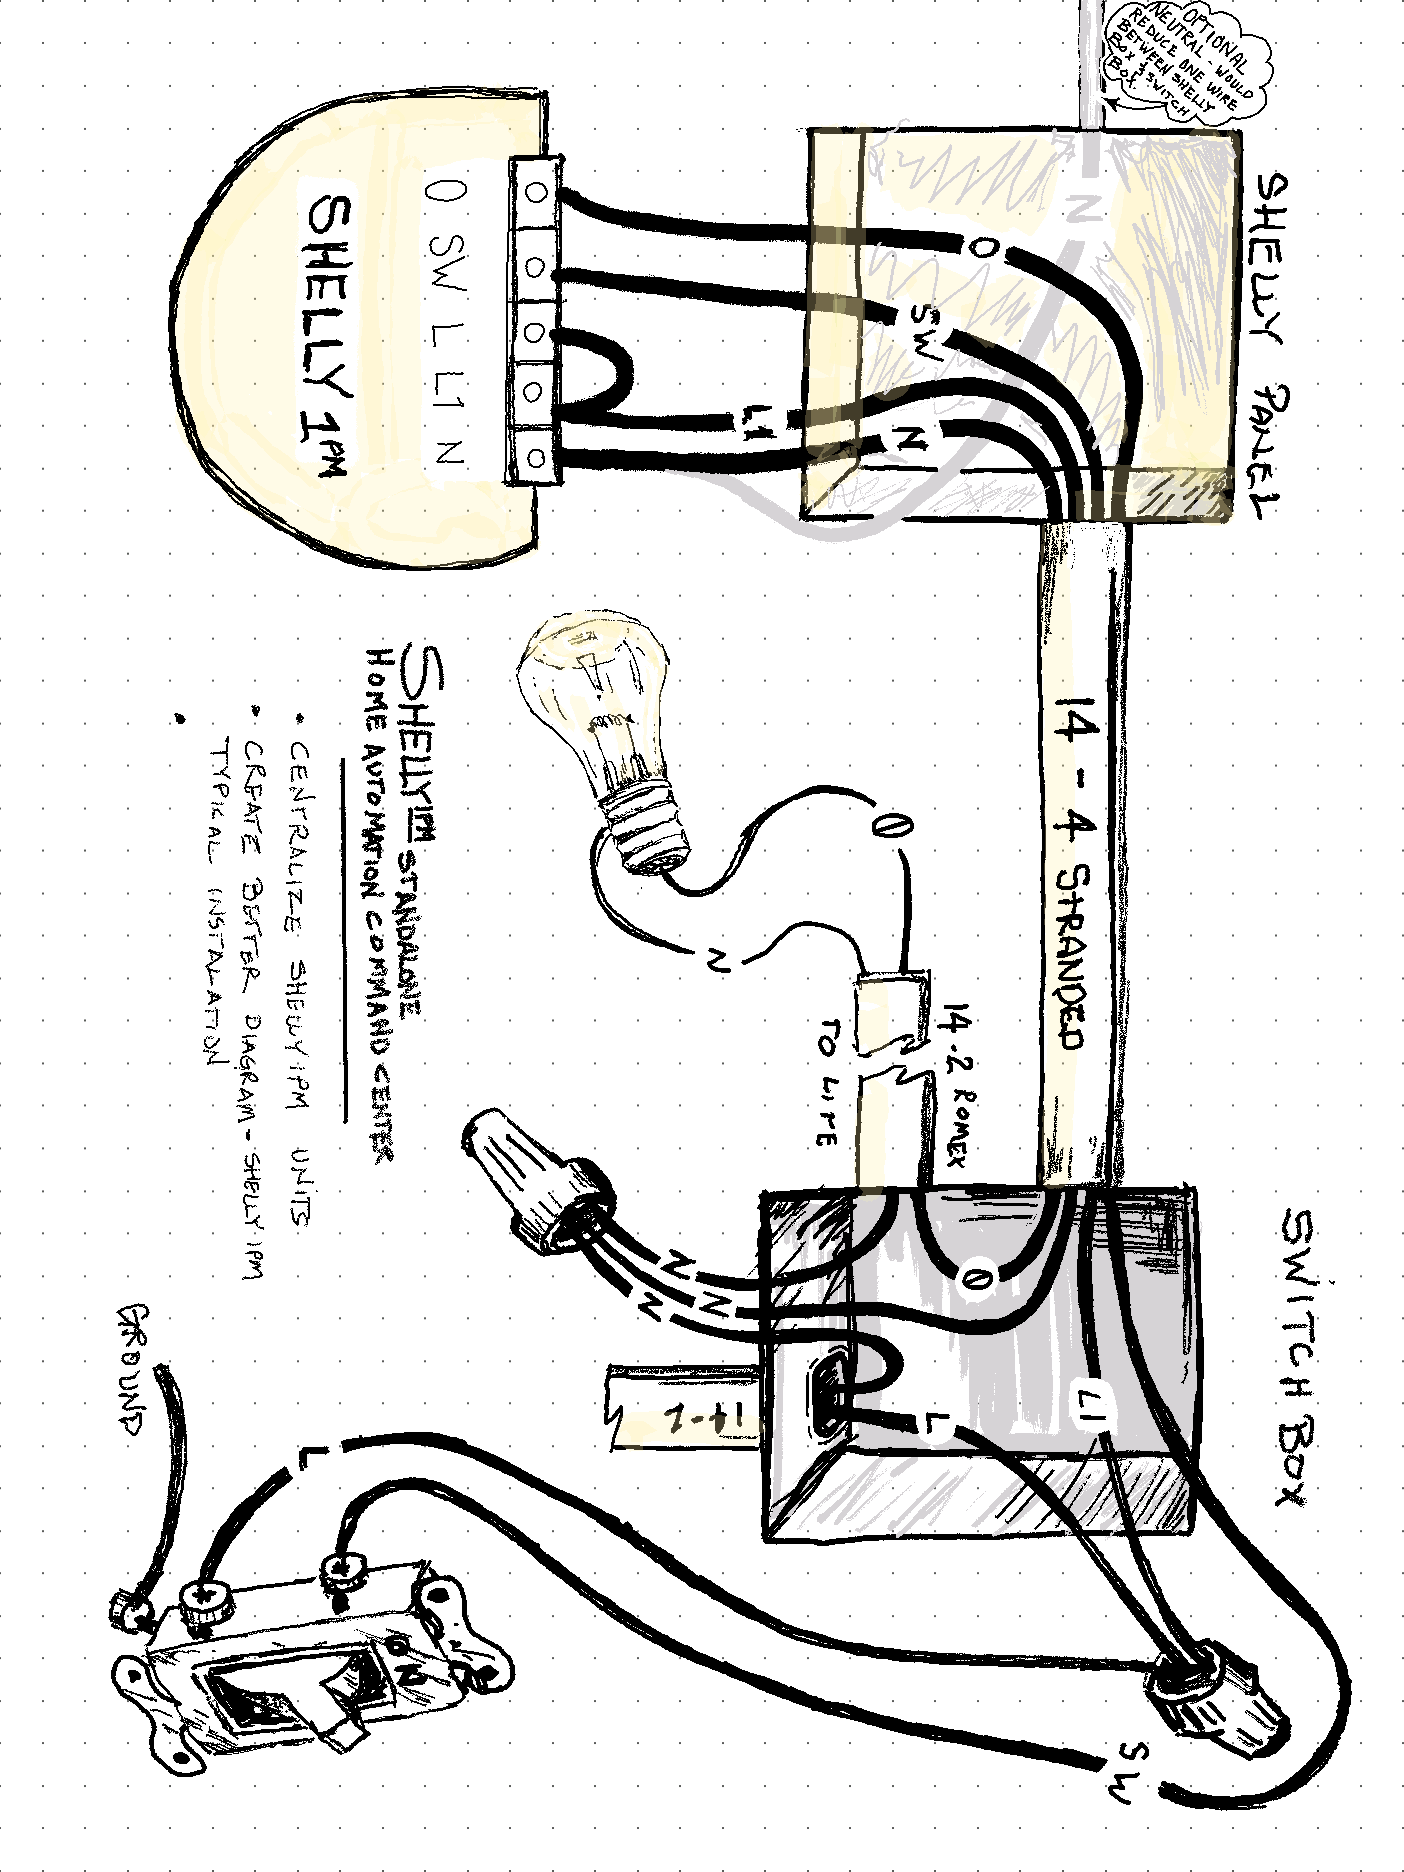 Shelly 1pm Wiring Diagram U S 120v In Line With Functional Light Switch In 2020 Light Switch Wire Light